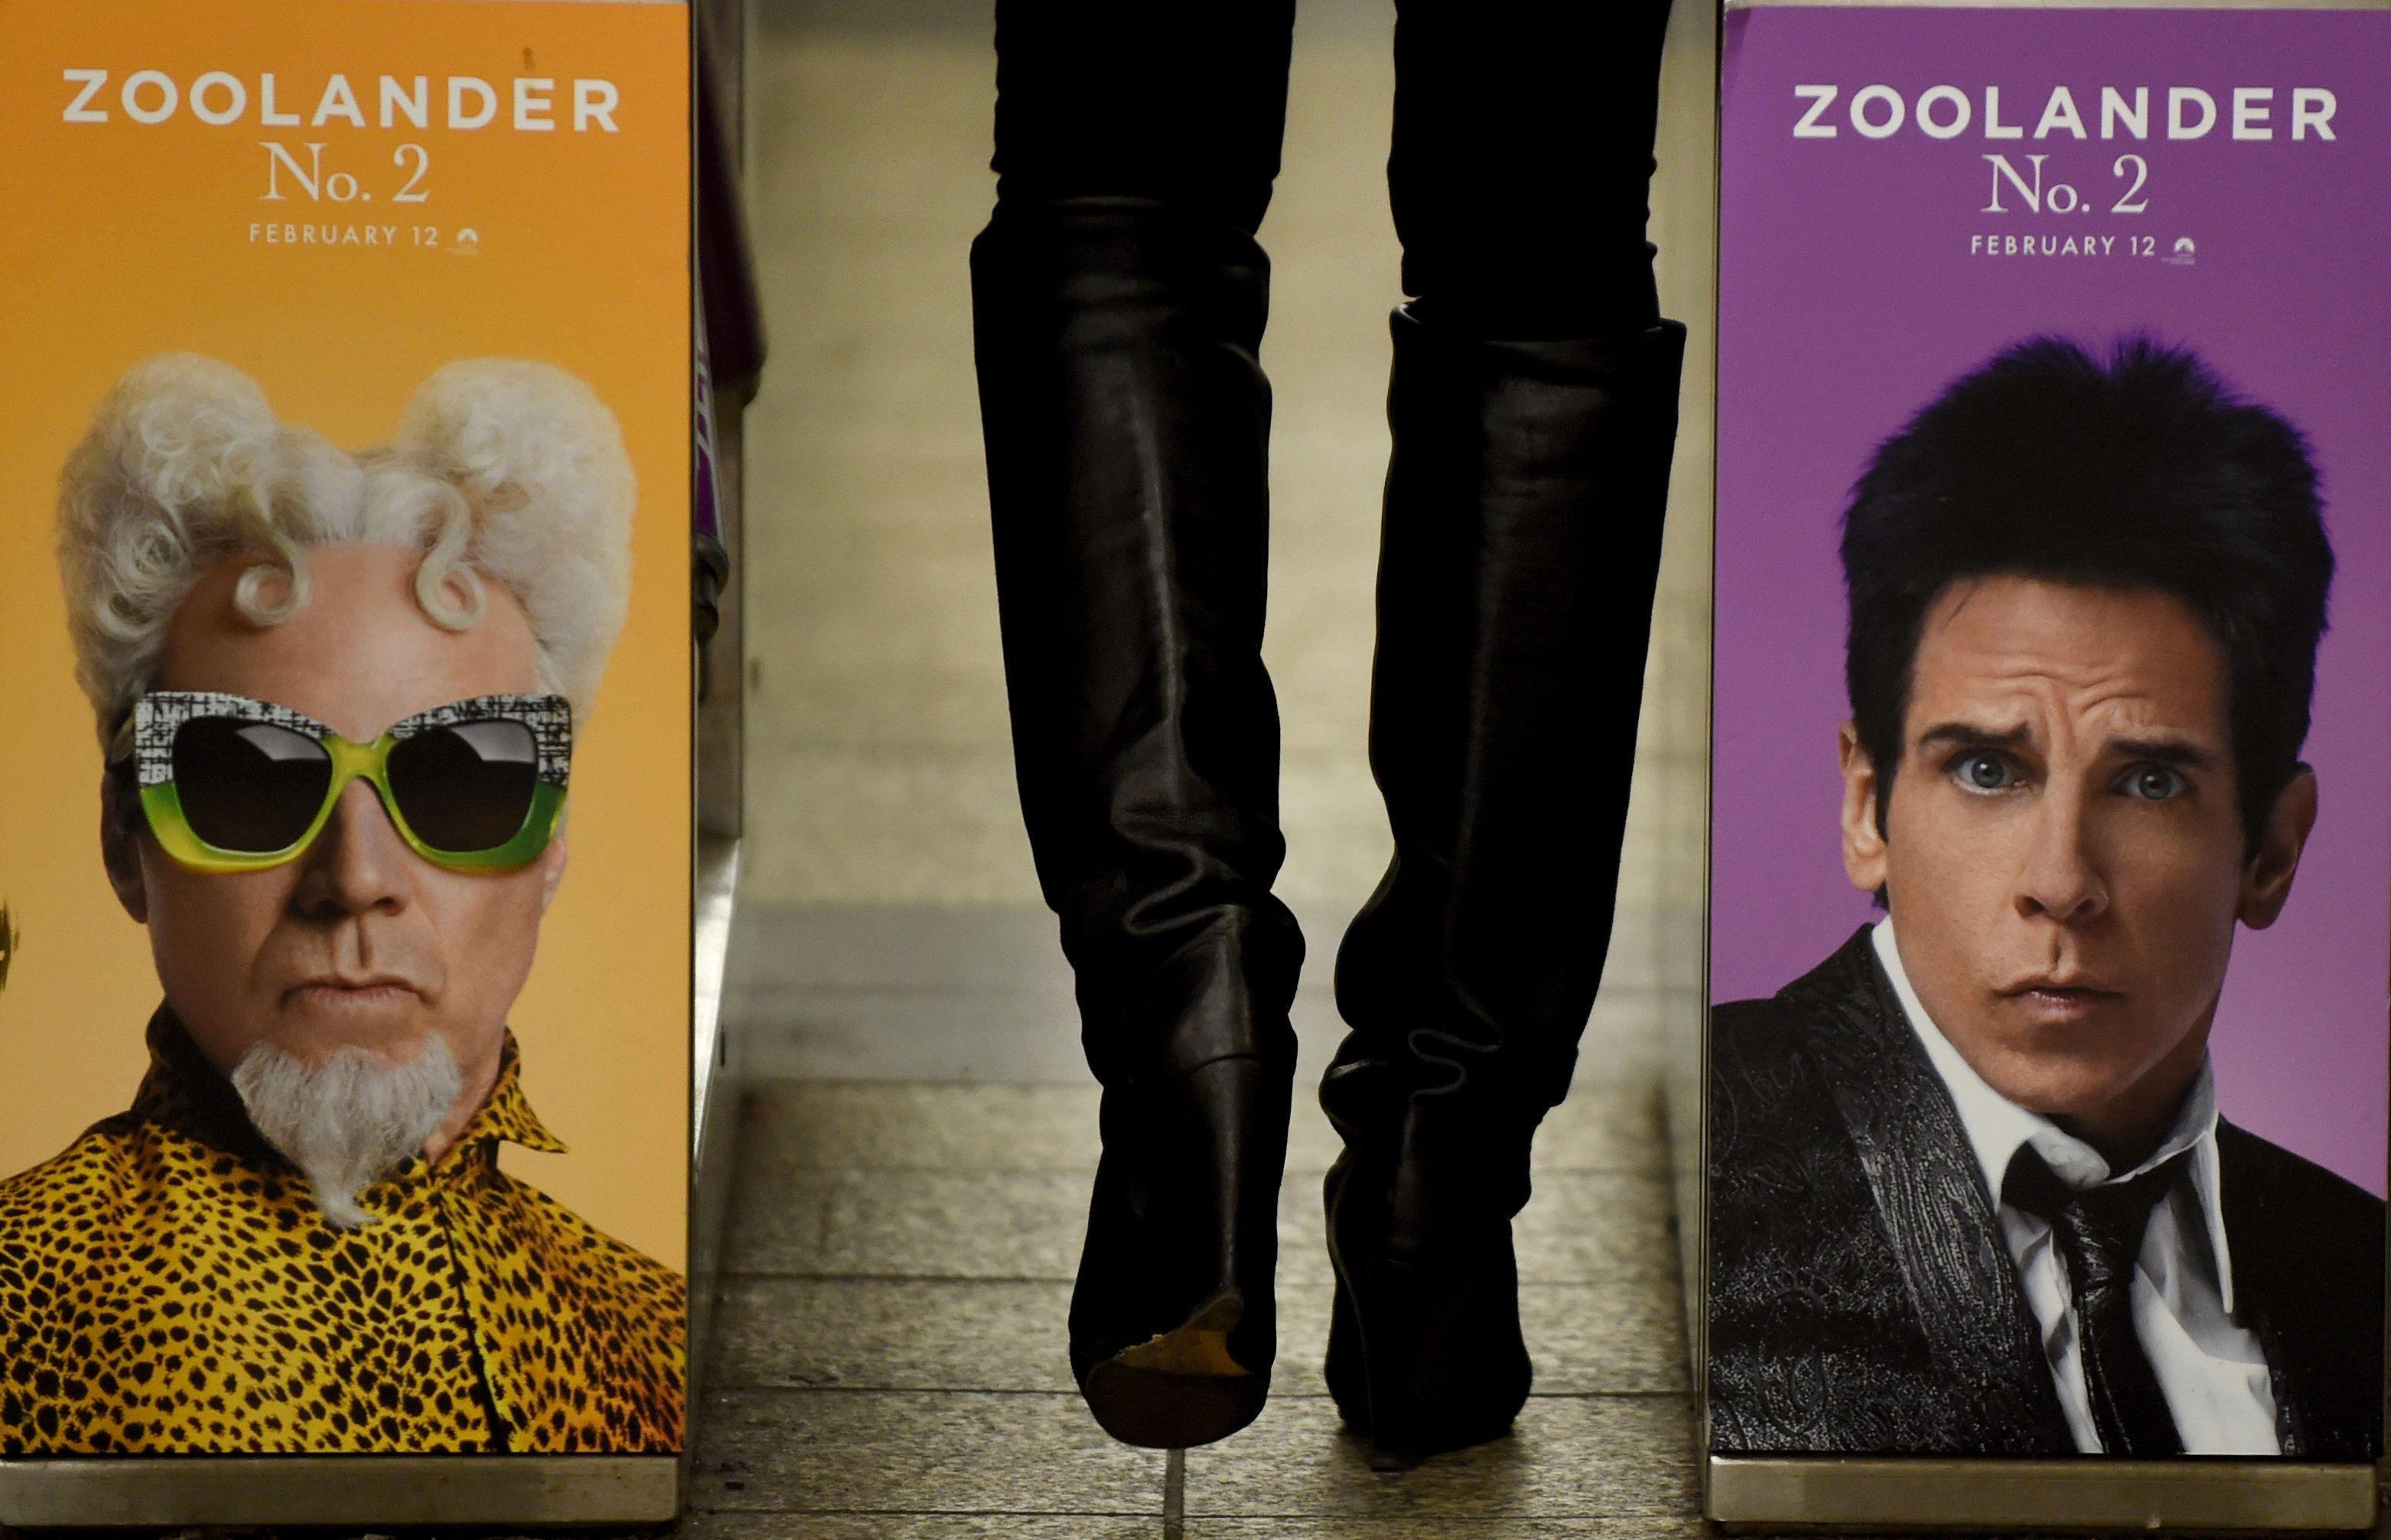 A woman passes through a turnstile on February 25, 2016 in the New York City Subway with a advertisment for 'Zoolander No. 2' featuring Ben Stiller (R) and Will Ferrell. Ads are placed all over the MTA subway system to catch the eye of commuters. / AFP / Timothy A. CLARY        (Photo credit should read TIMOTHY A. CLARY/AFP/Getty Images)